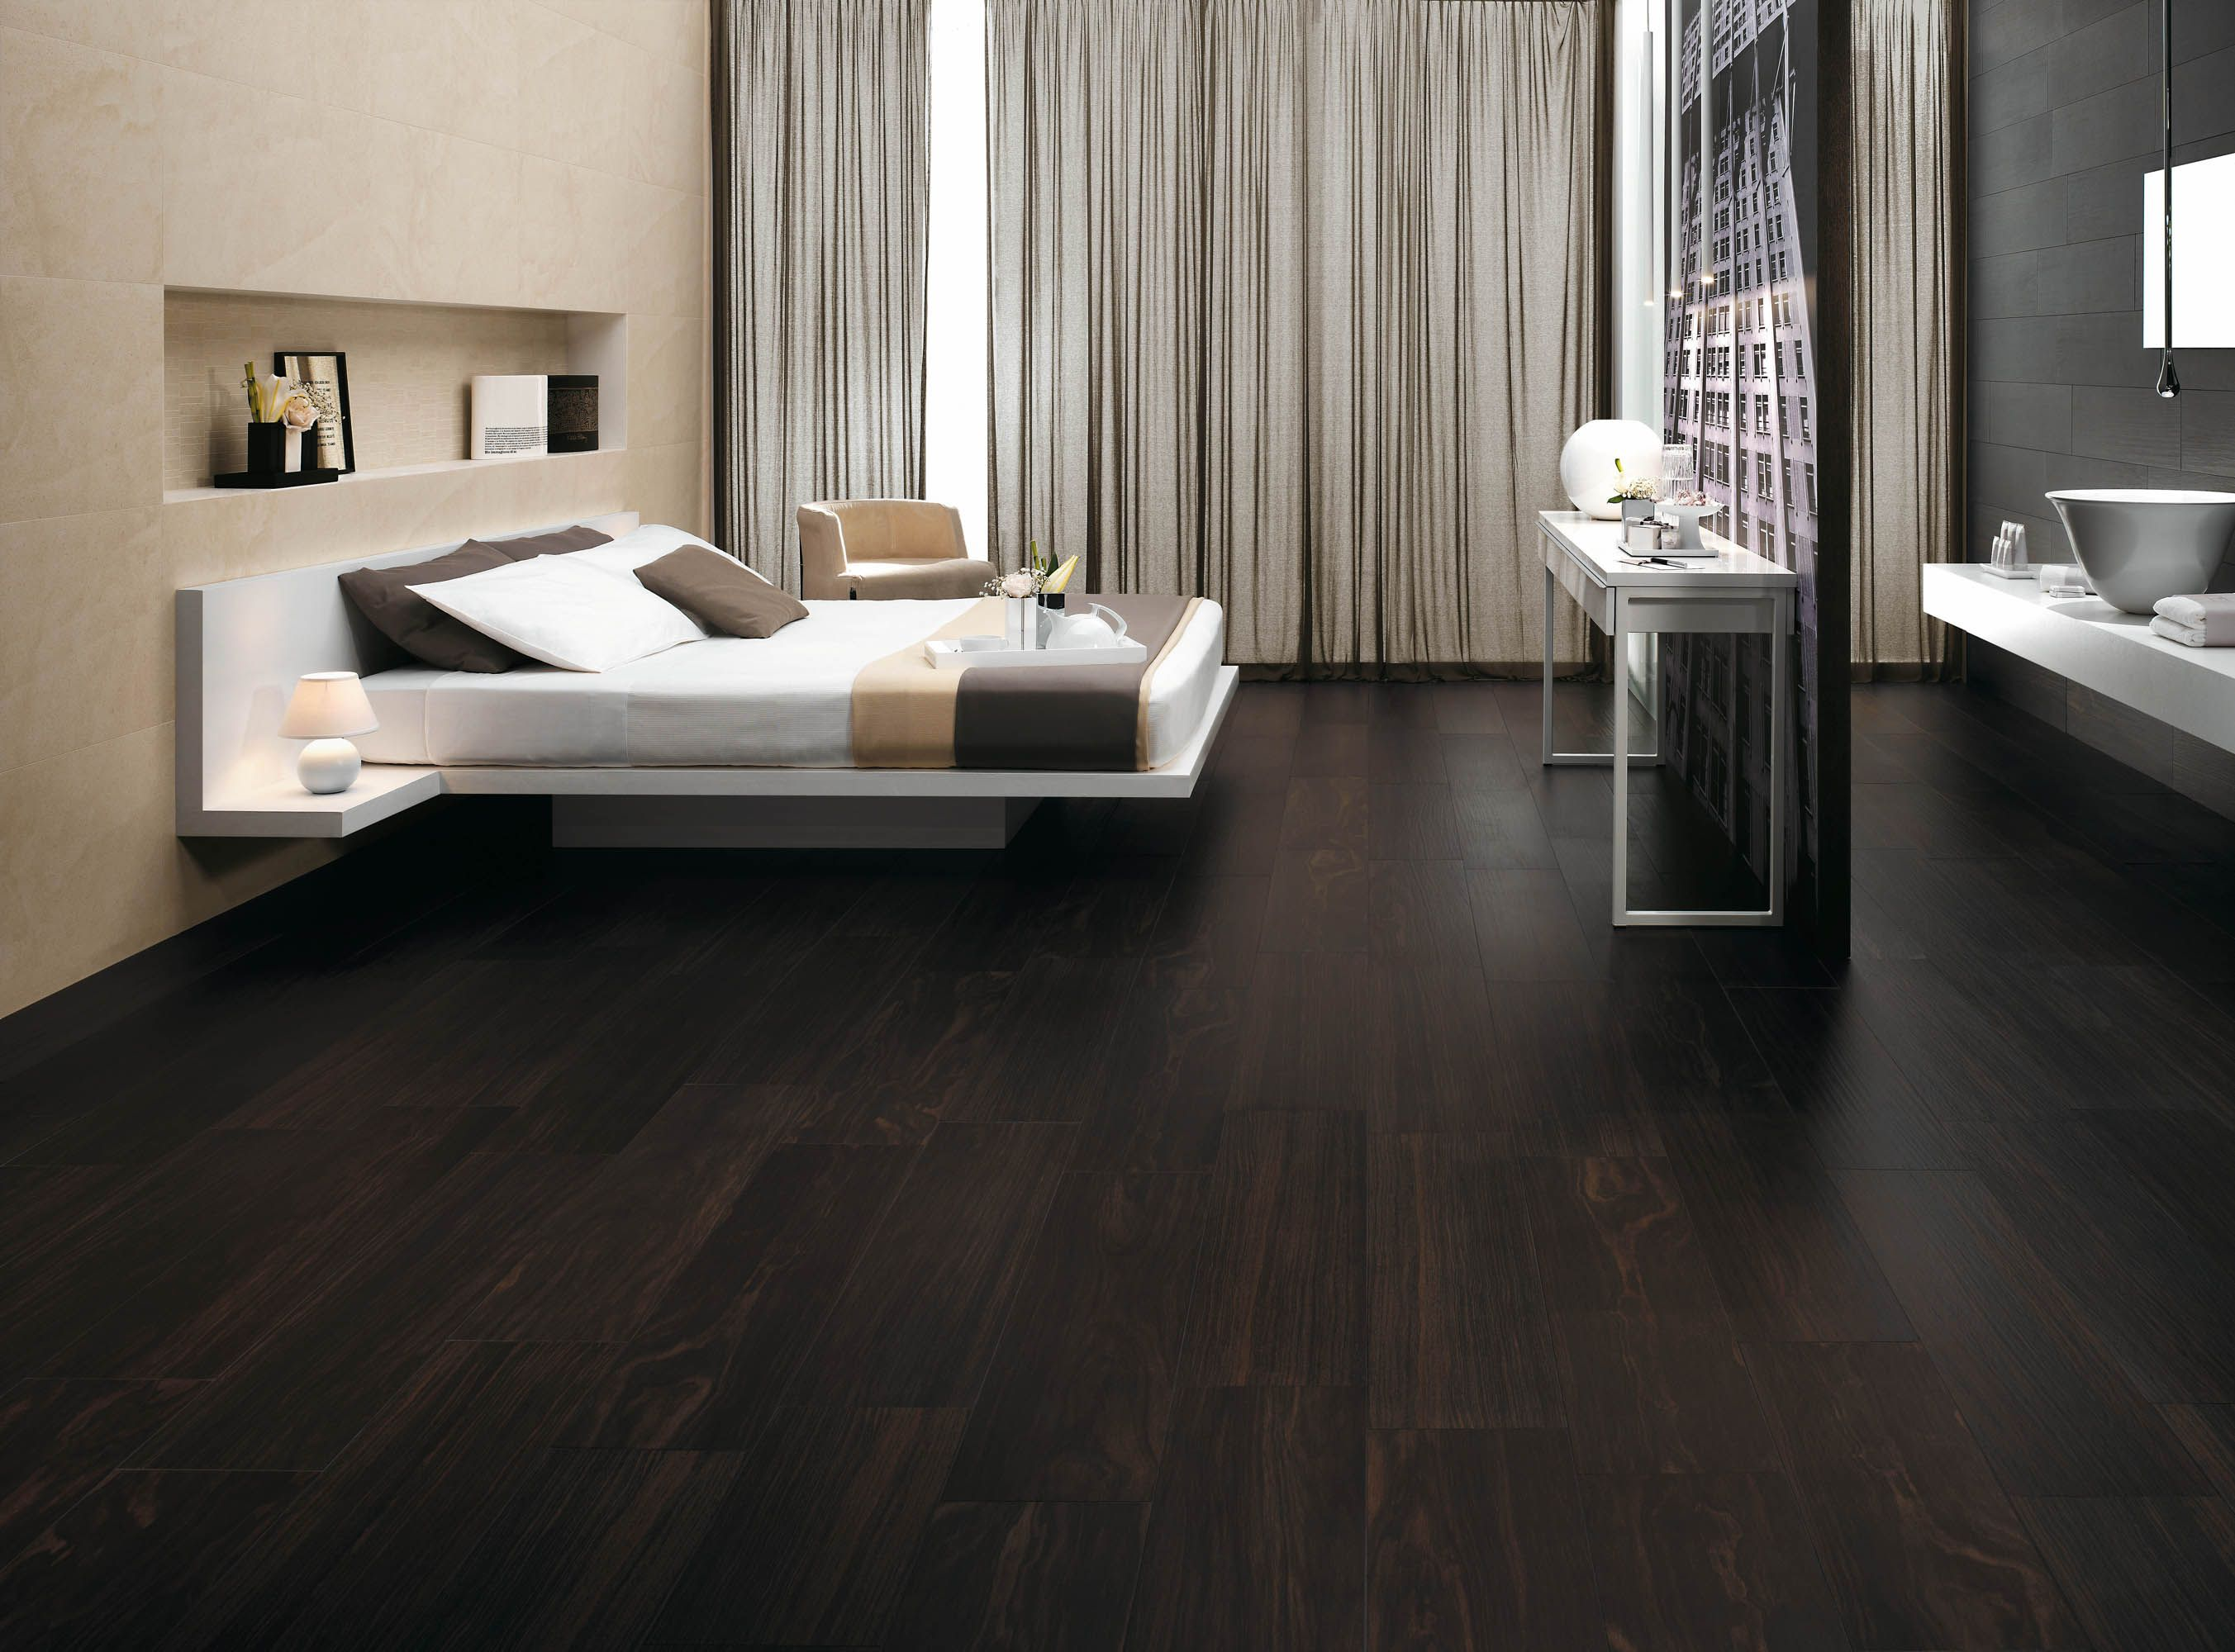 Minoli Tiles Etic A wood look floor with all the